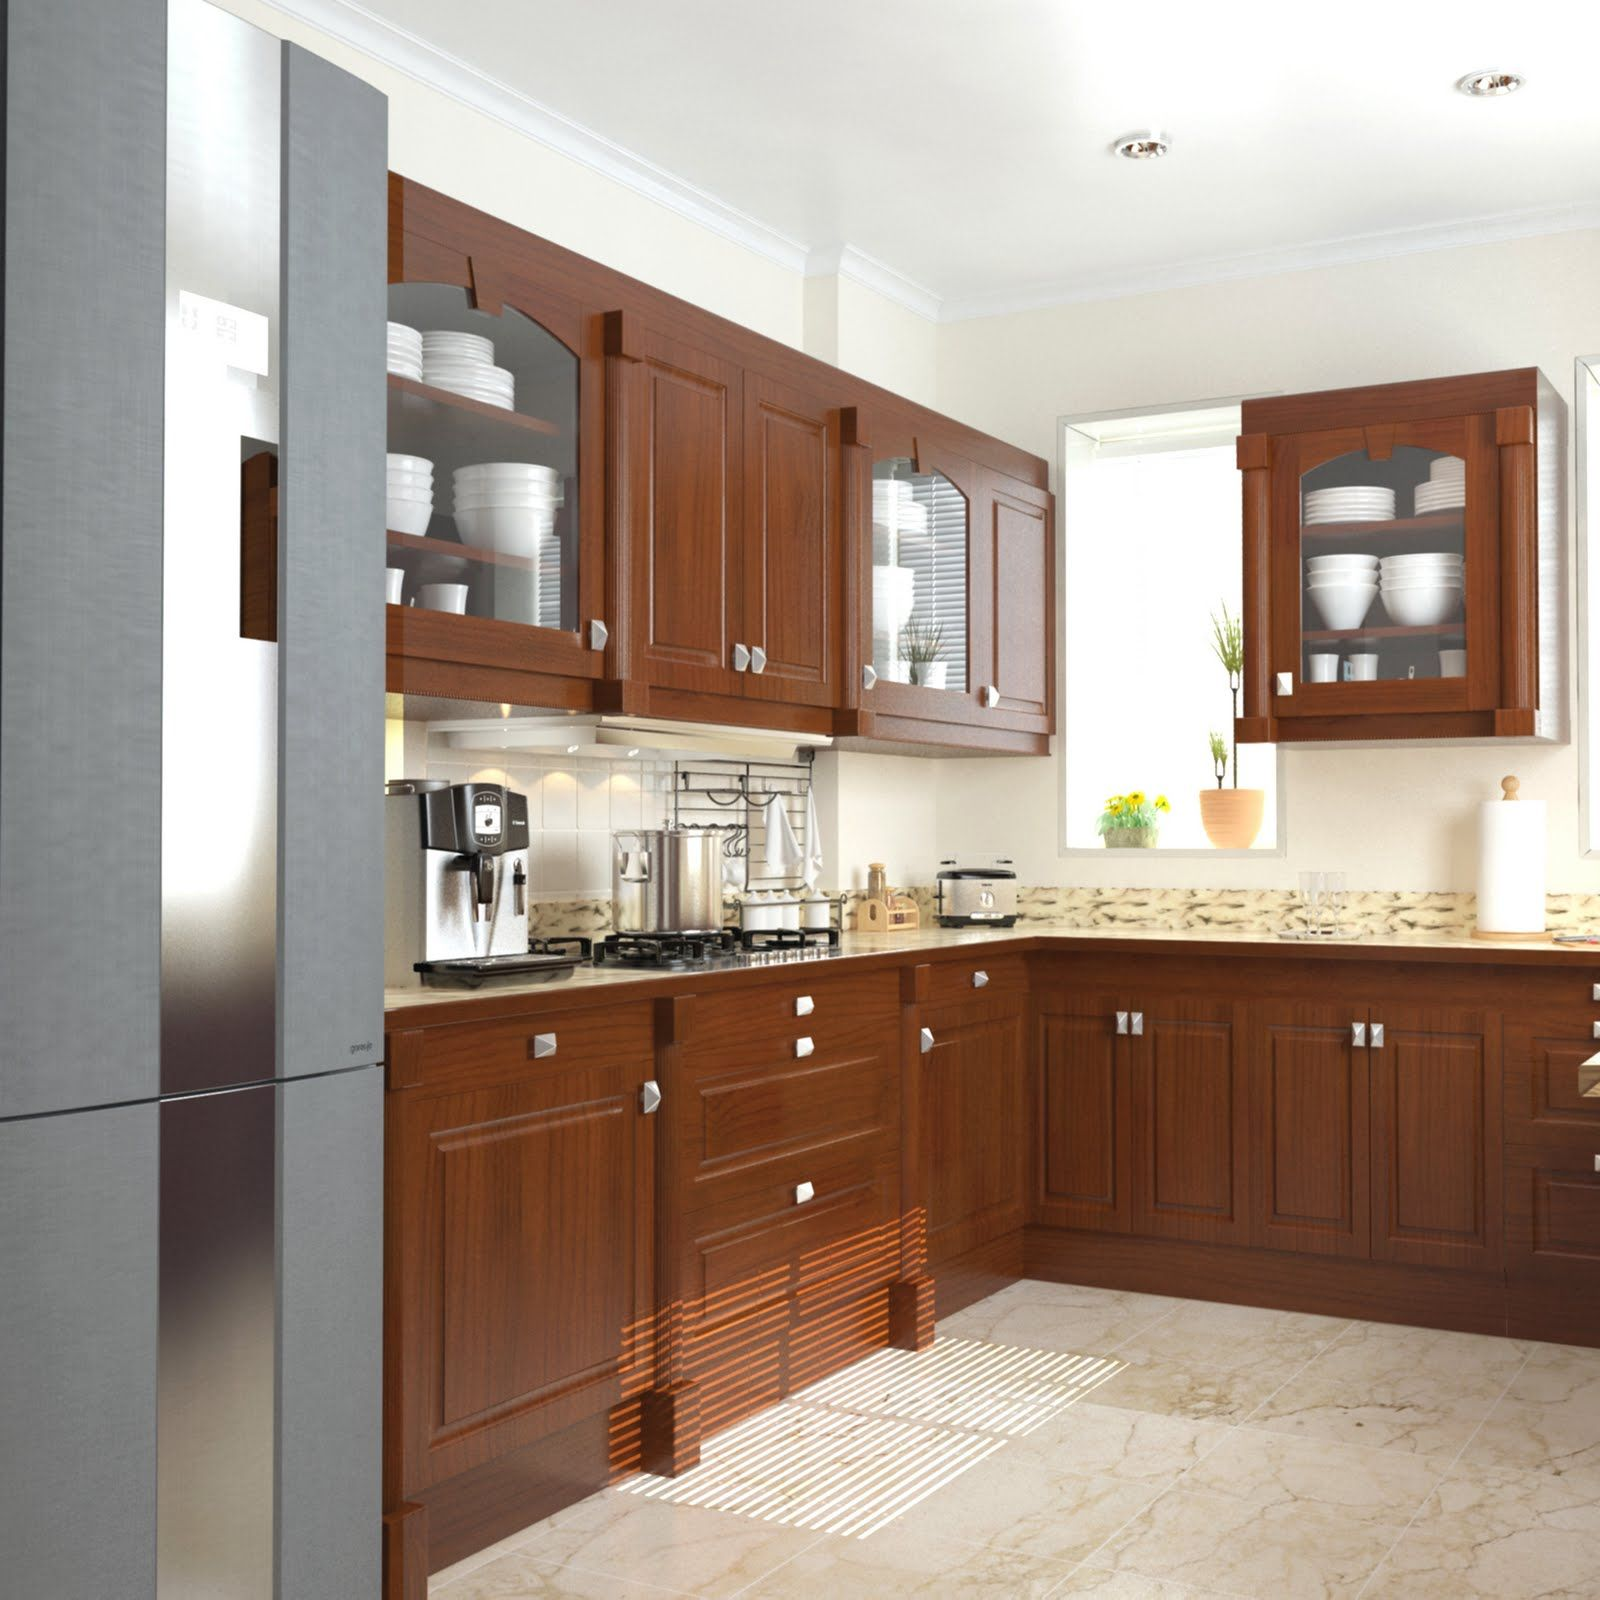 Free Kitchen Design Software Uk Kitchen Design Software Kitchen Room Design Modern Kitchen Design